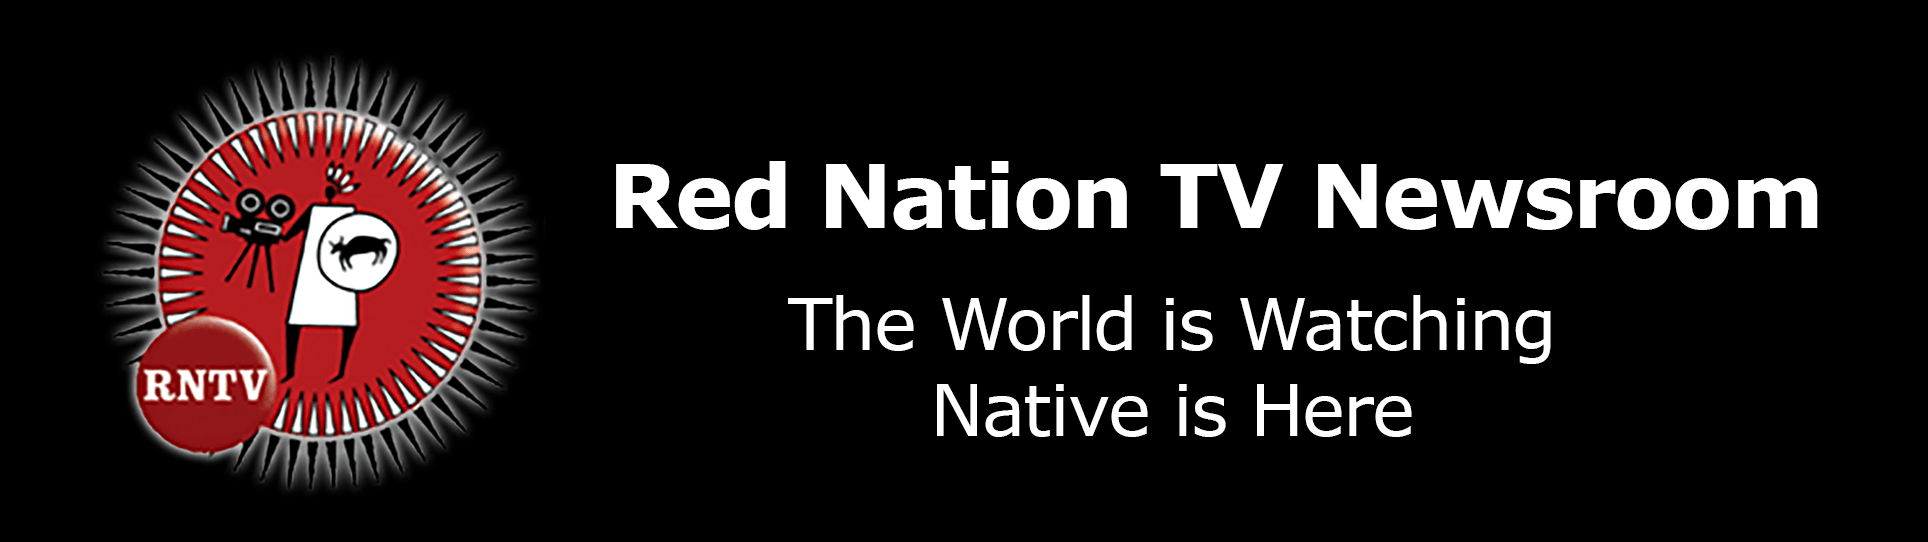 Red Nation TV Newsroom